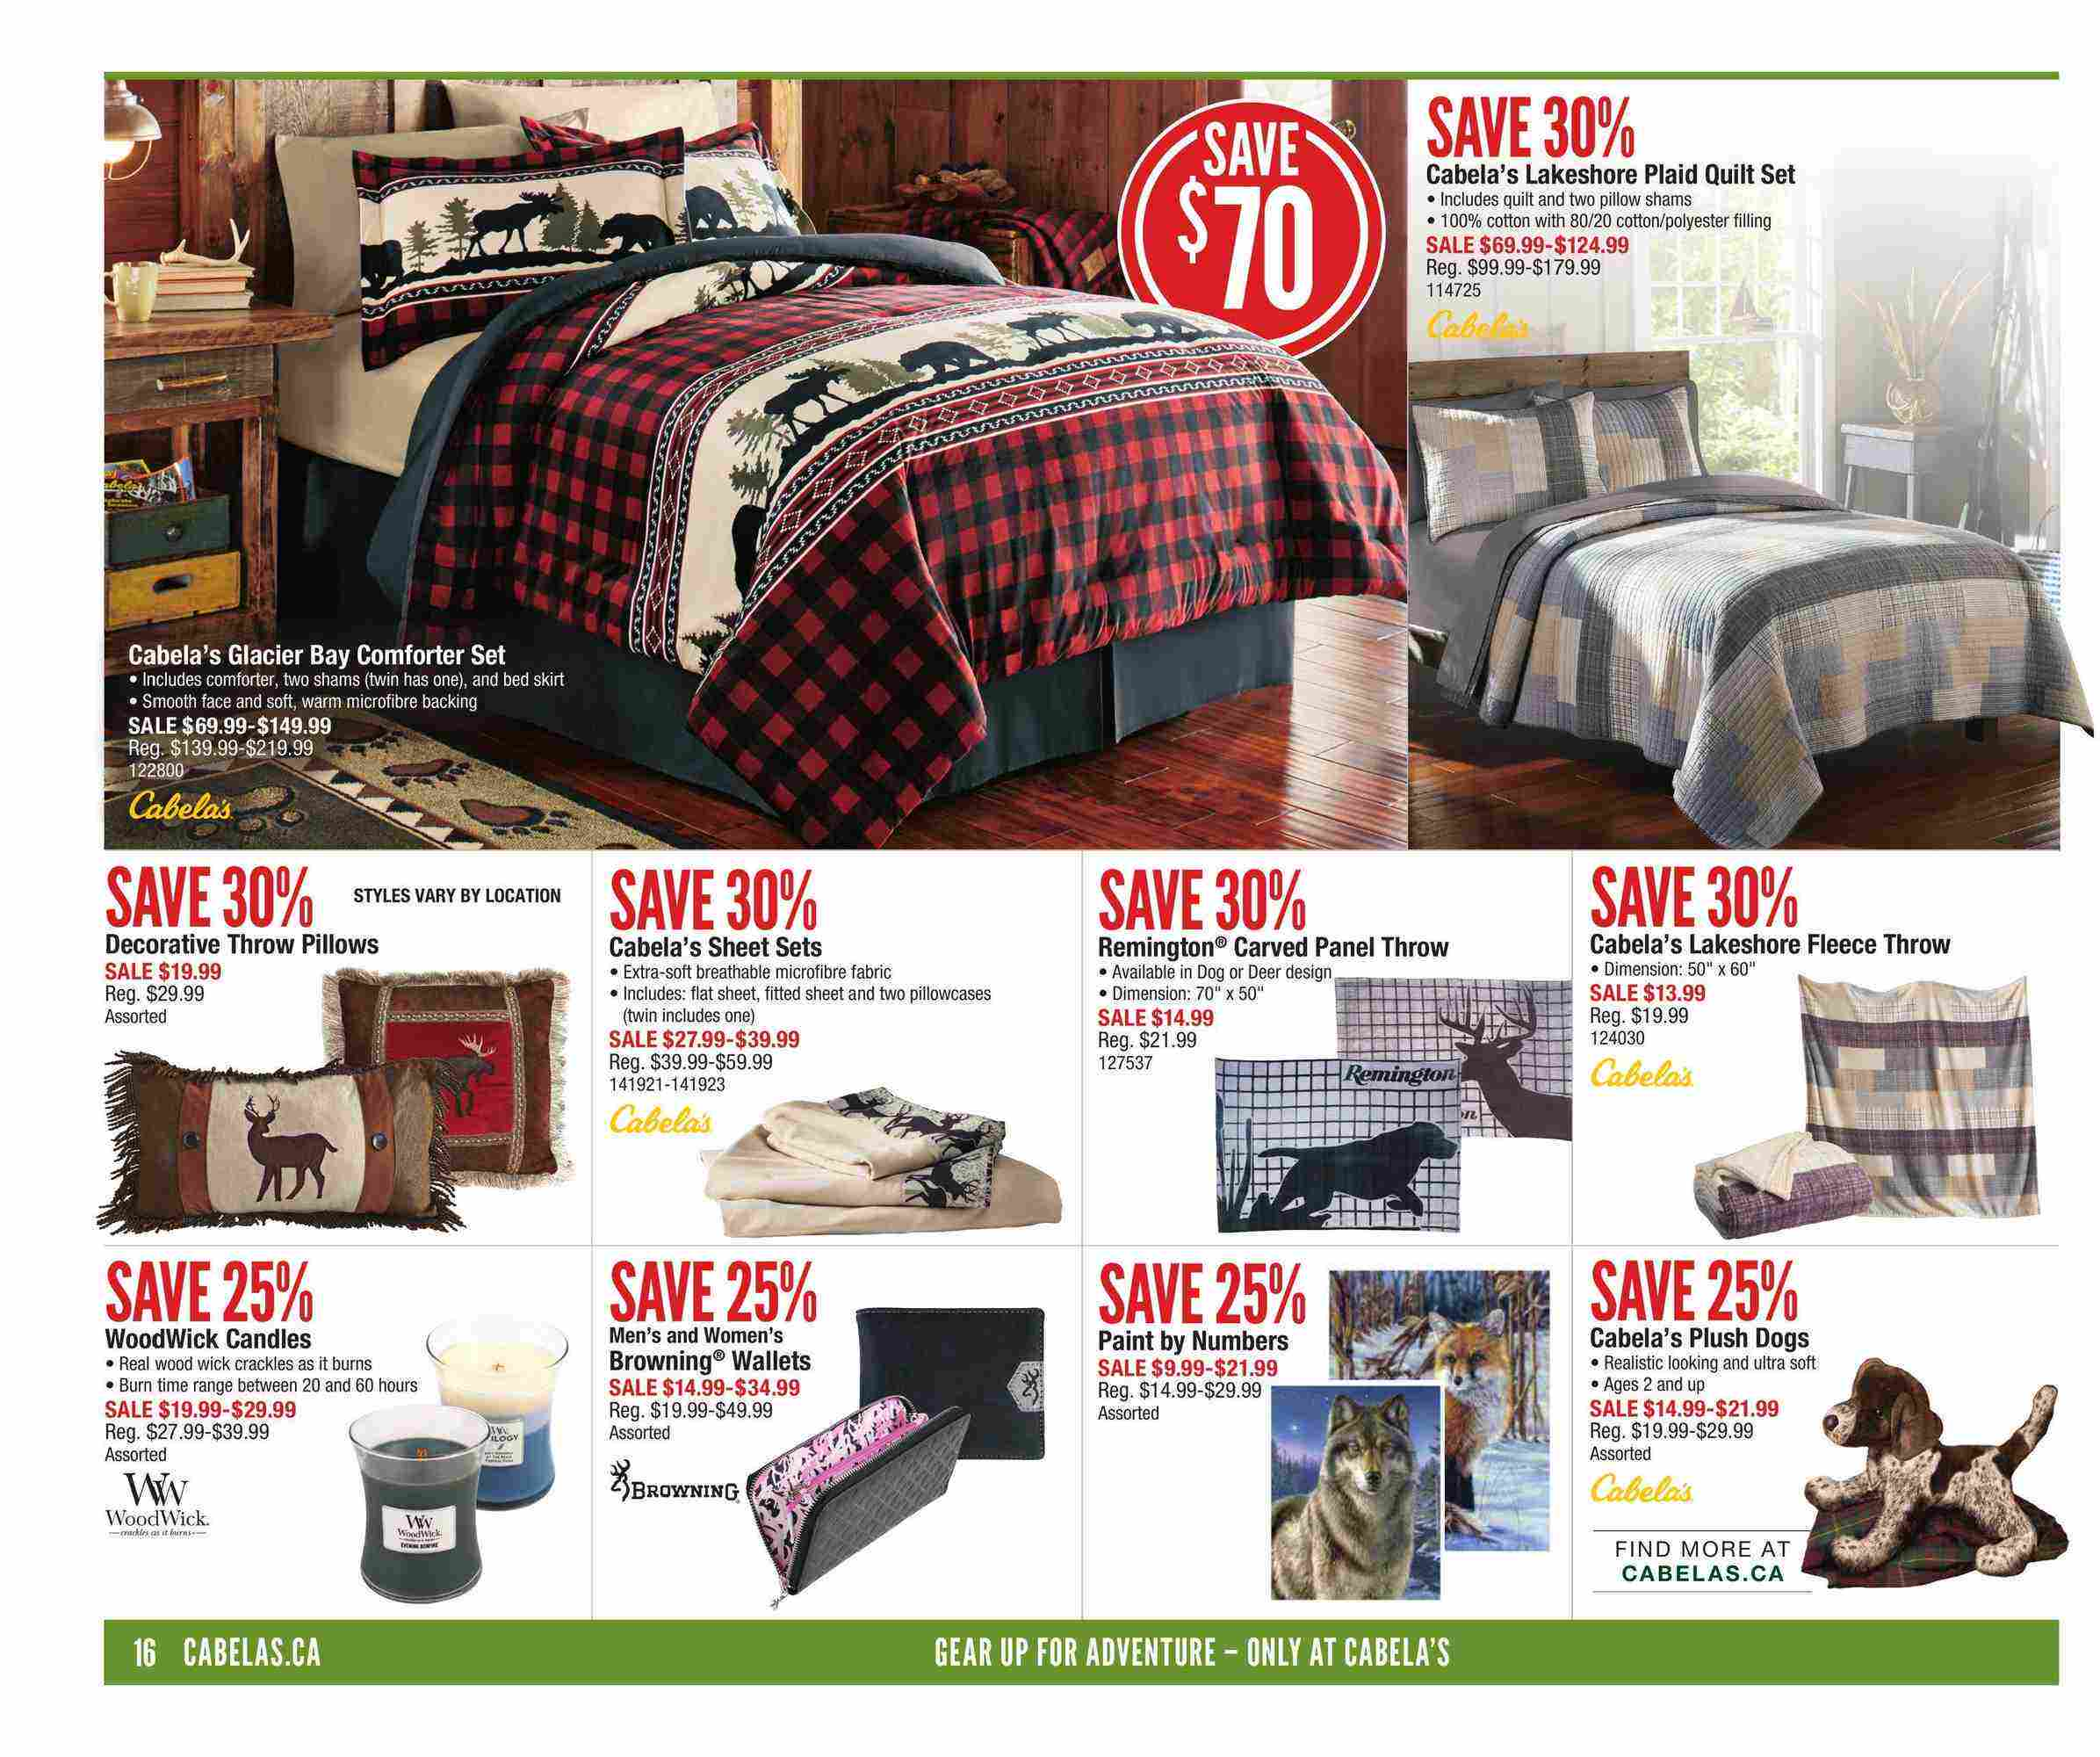 Cabela's Canada Flyer (AB) September 21 - October 4 2017